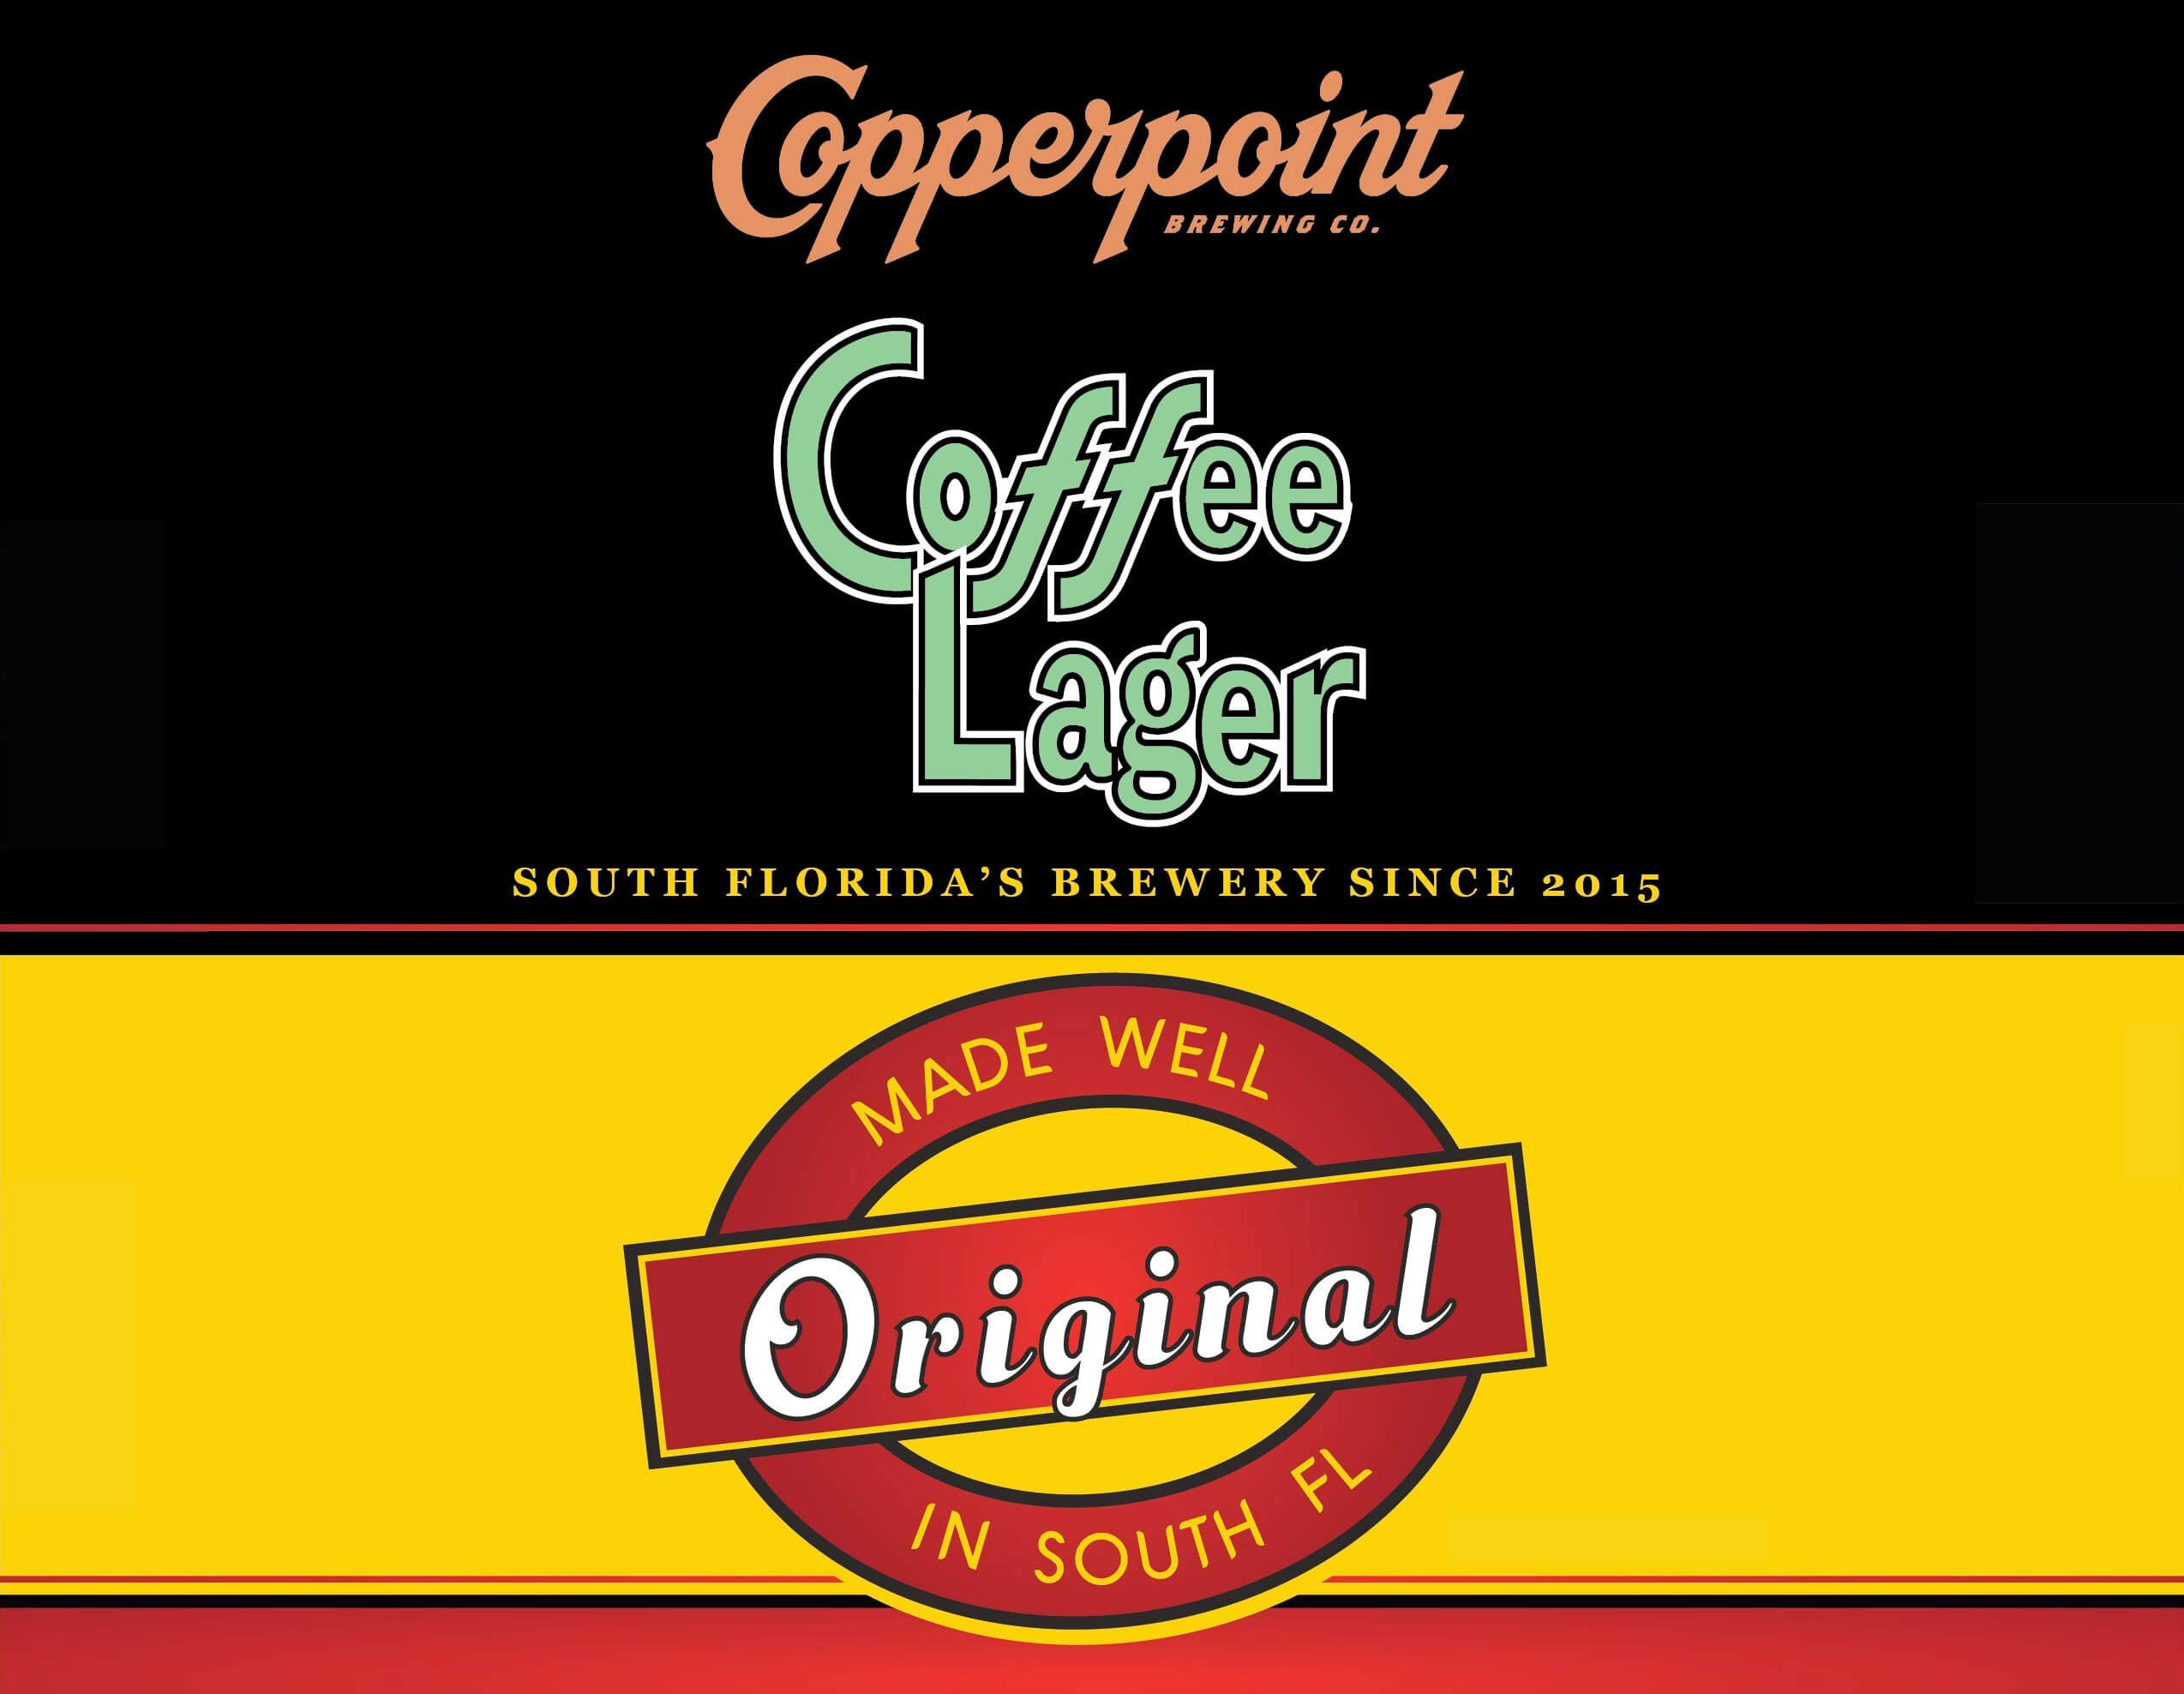 Label art for the Coffee Lager by Copperpoint Brewing Company